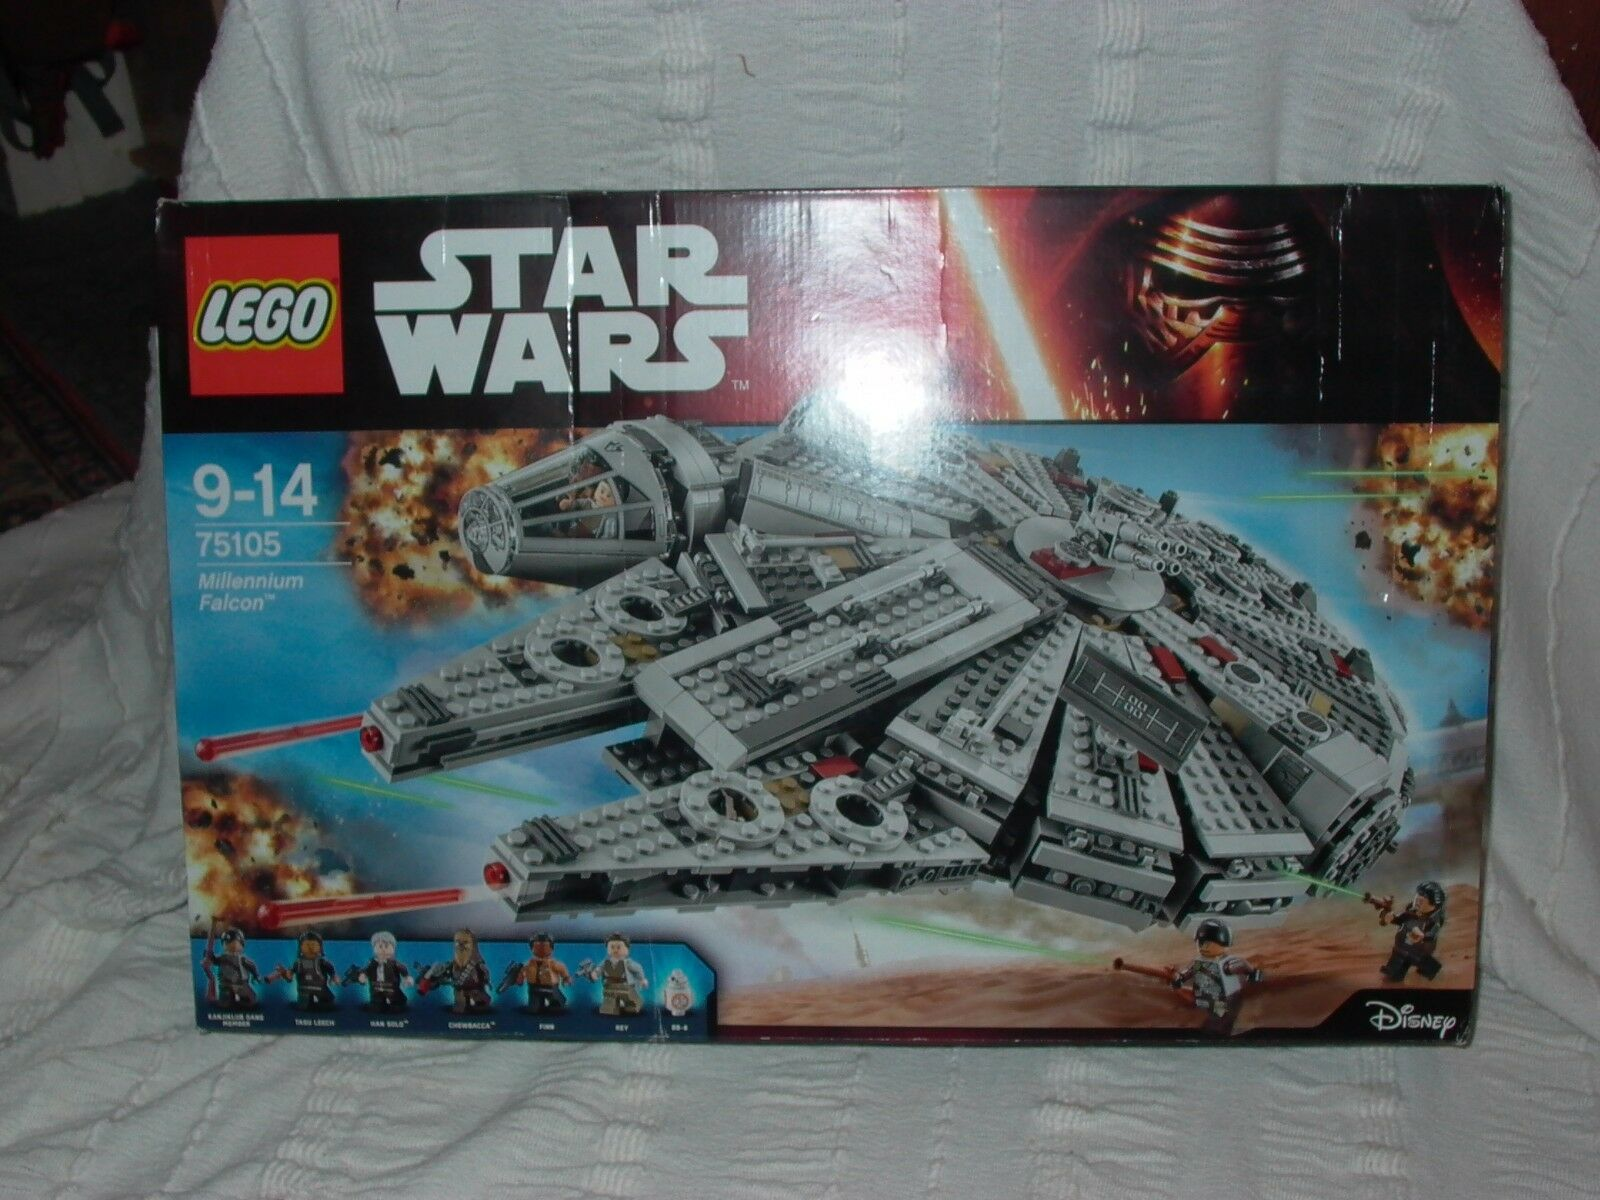 LEGO Star Wars Millennium Falcon (75105) unopened new in box